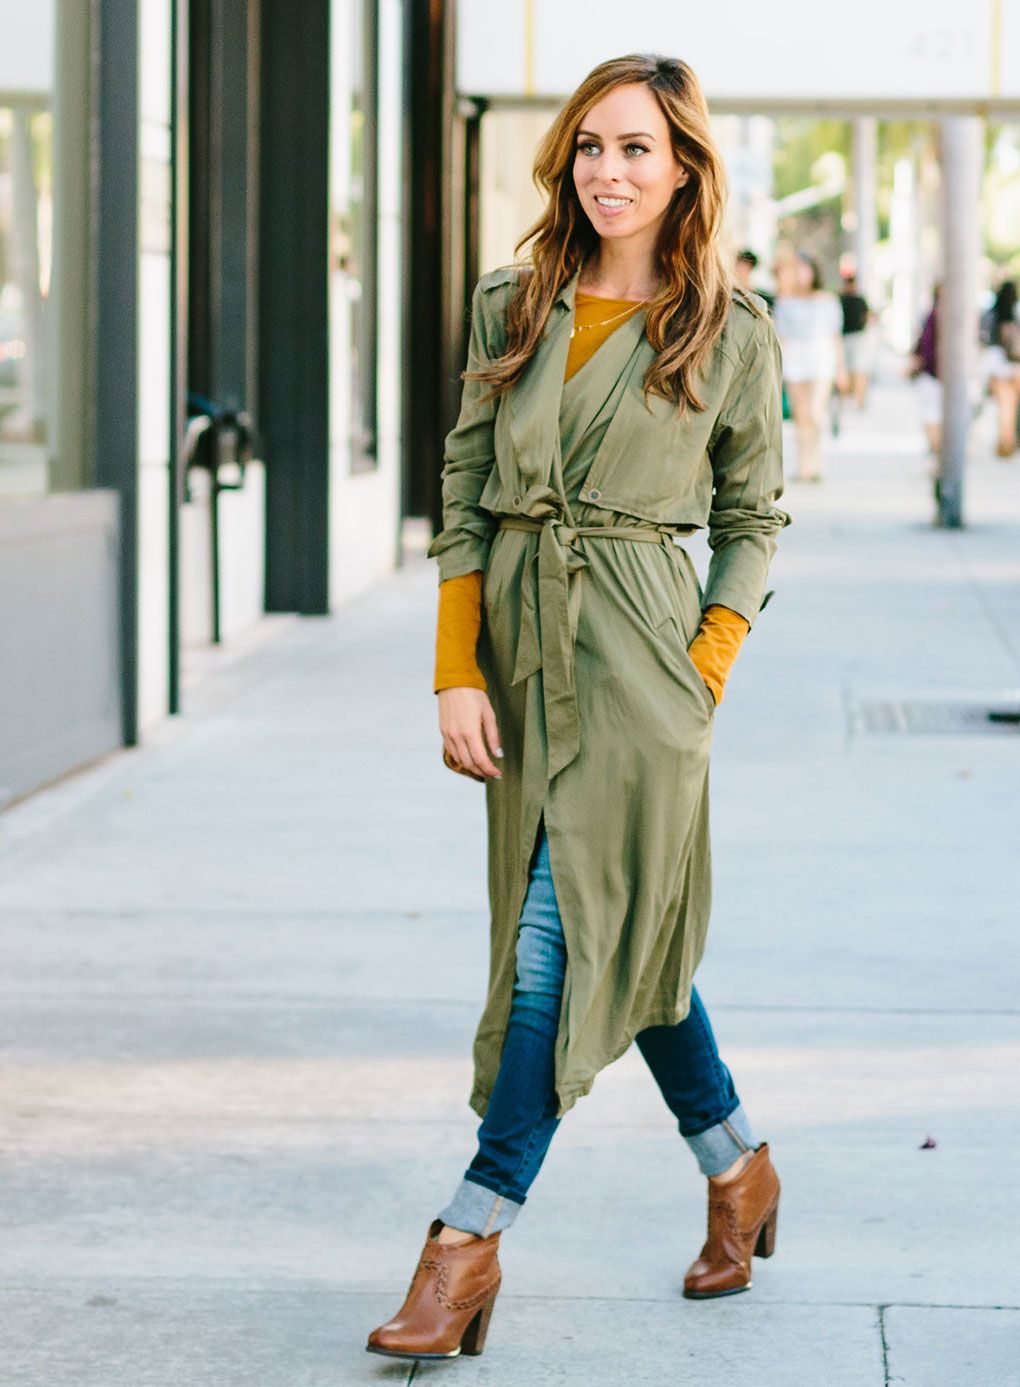 2019 year look- How to trench wear coat in summer